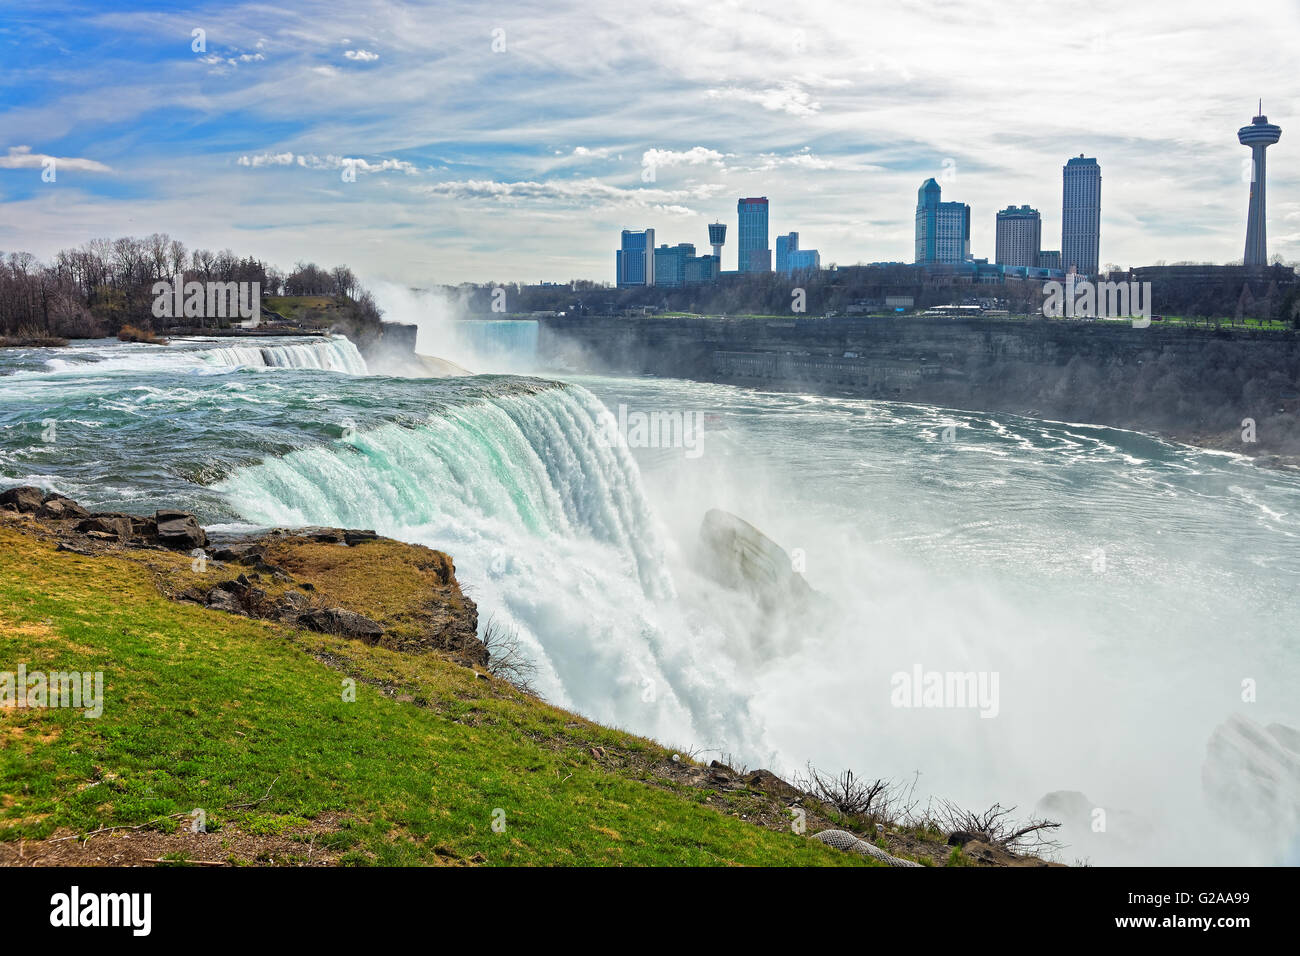 Niagara Falls From The American Side And Skyscrapers In Canada A Stock Photo Alamy